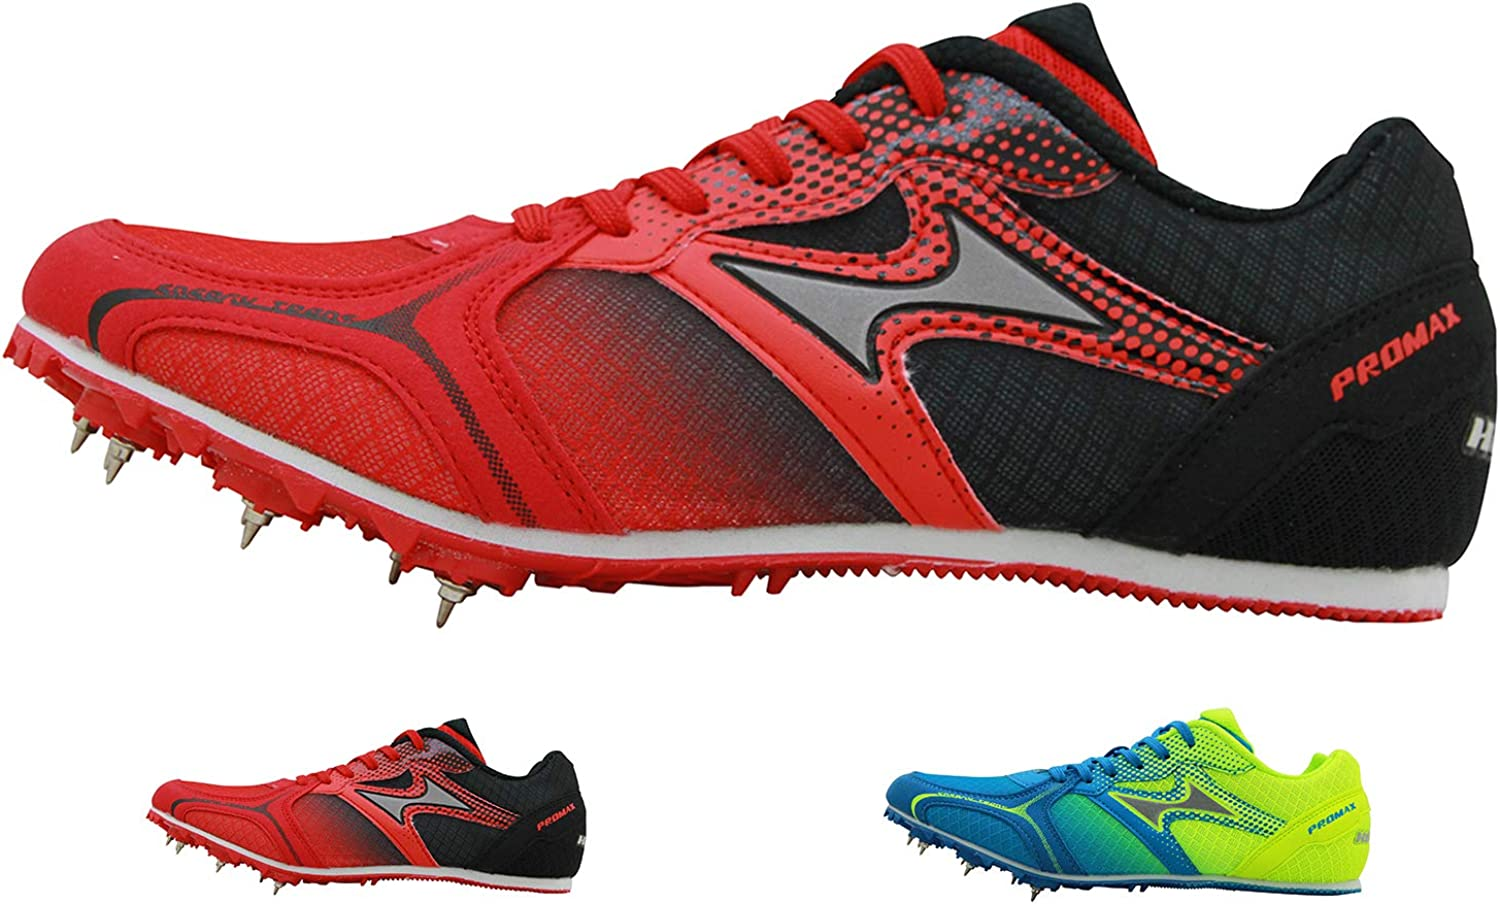 HEALTH Track Spike Running Sprint Shoes Track and Field Shoes Mesh Breathable Lightweight Professional Athletic Shoes 5599 Blue Red for Kids, Boys, Girls,Womens, Mens